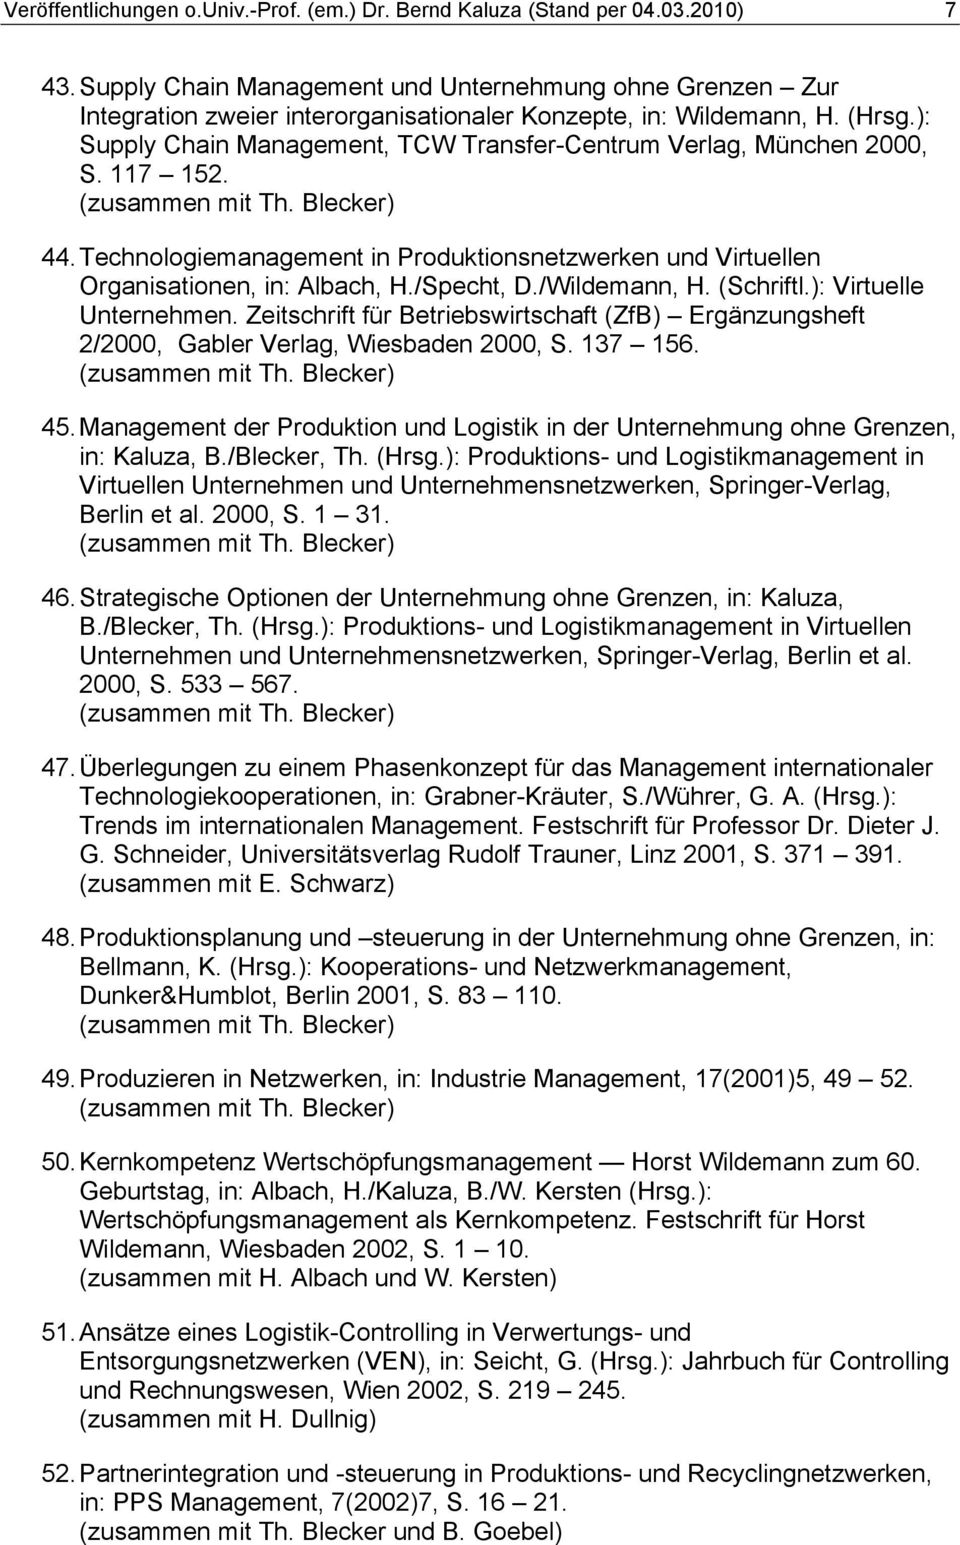 ): Supply Chain Management, TCW Transfer-Centrum Verlag, München 2000, S. 117 152. 44. Technologiemanagement in Produktionsnetzwerken und Virtuellen Organisationen, in: Albach, H./Specht, D.